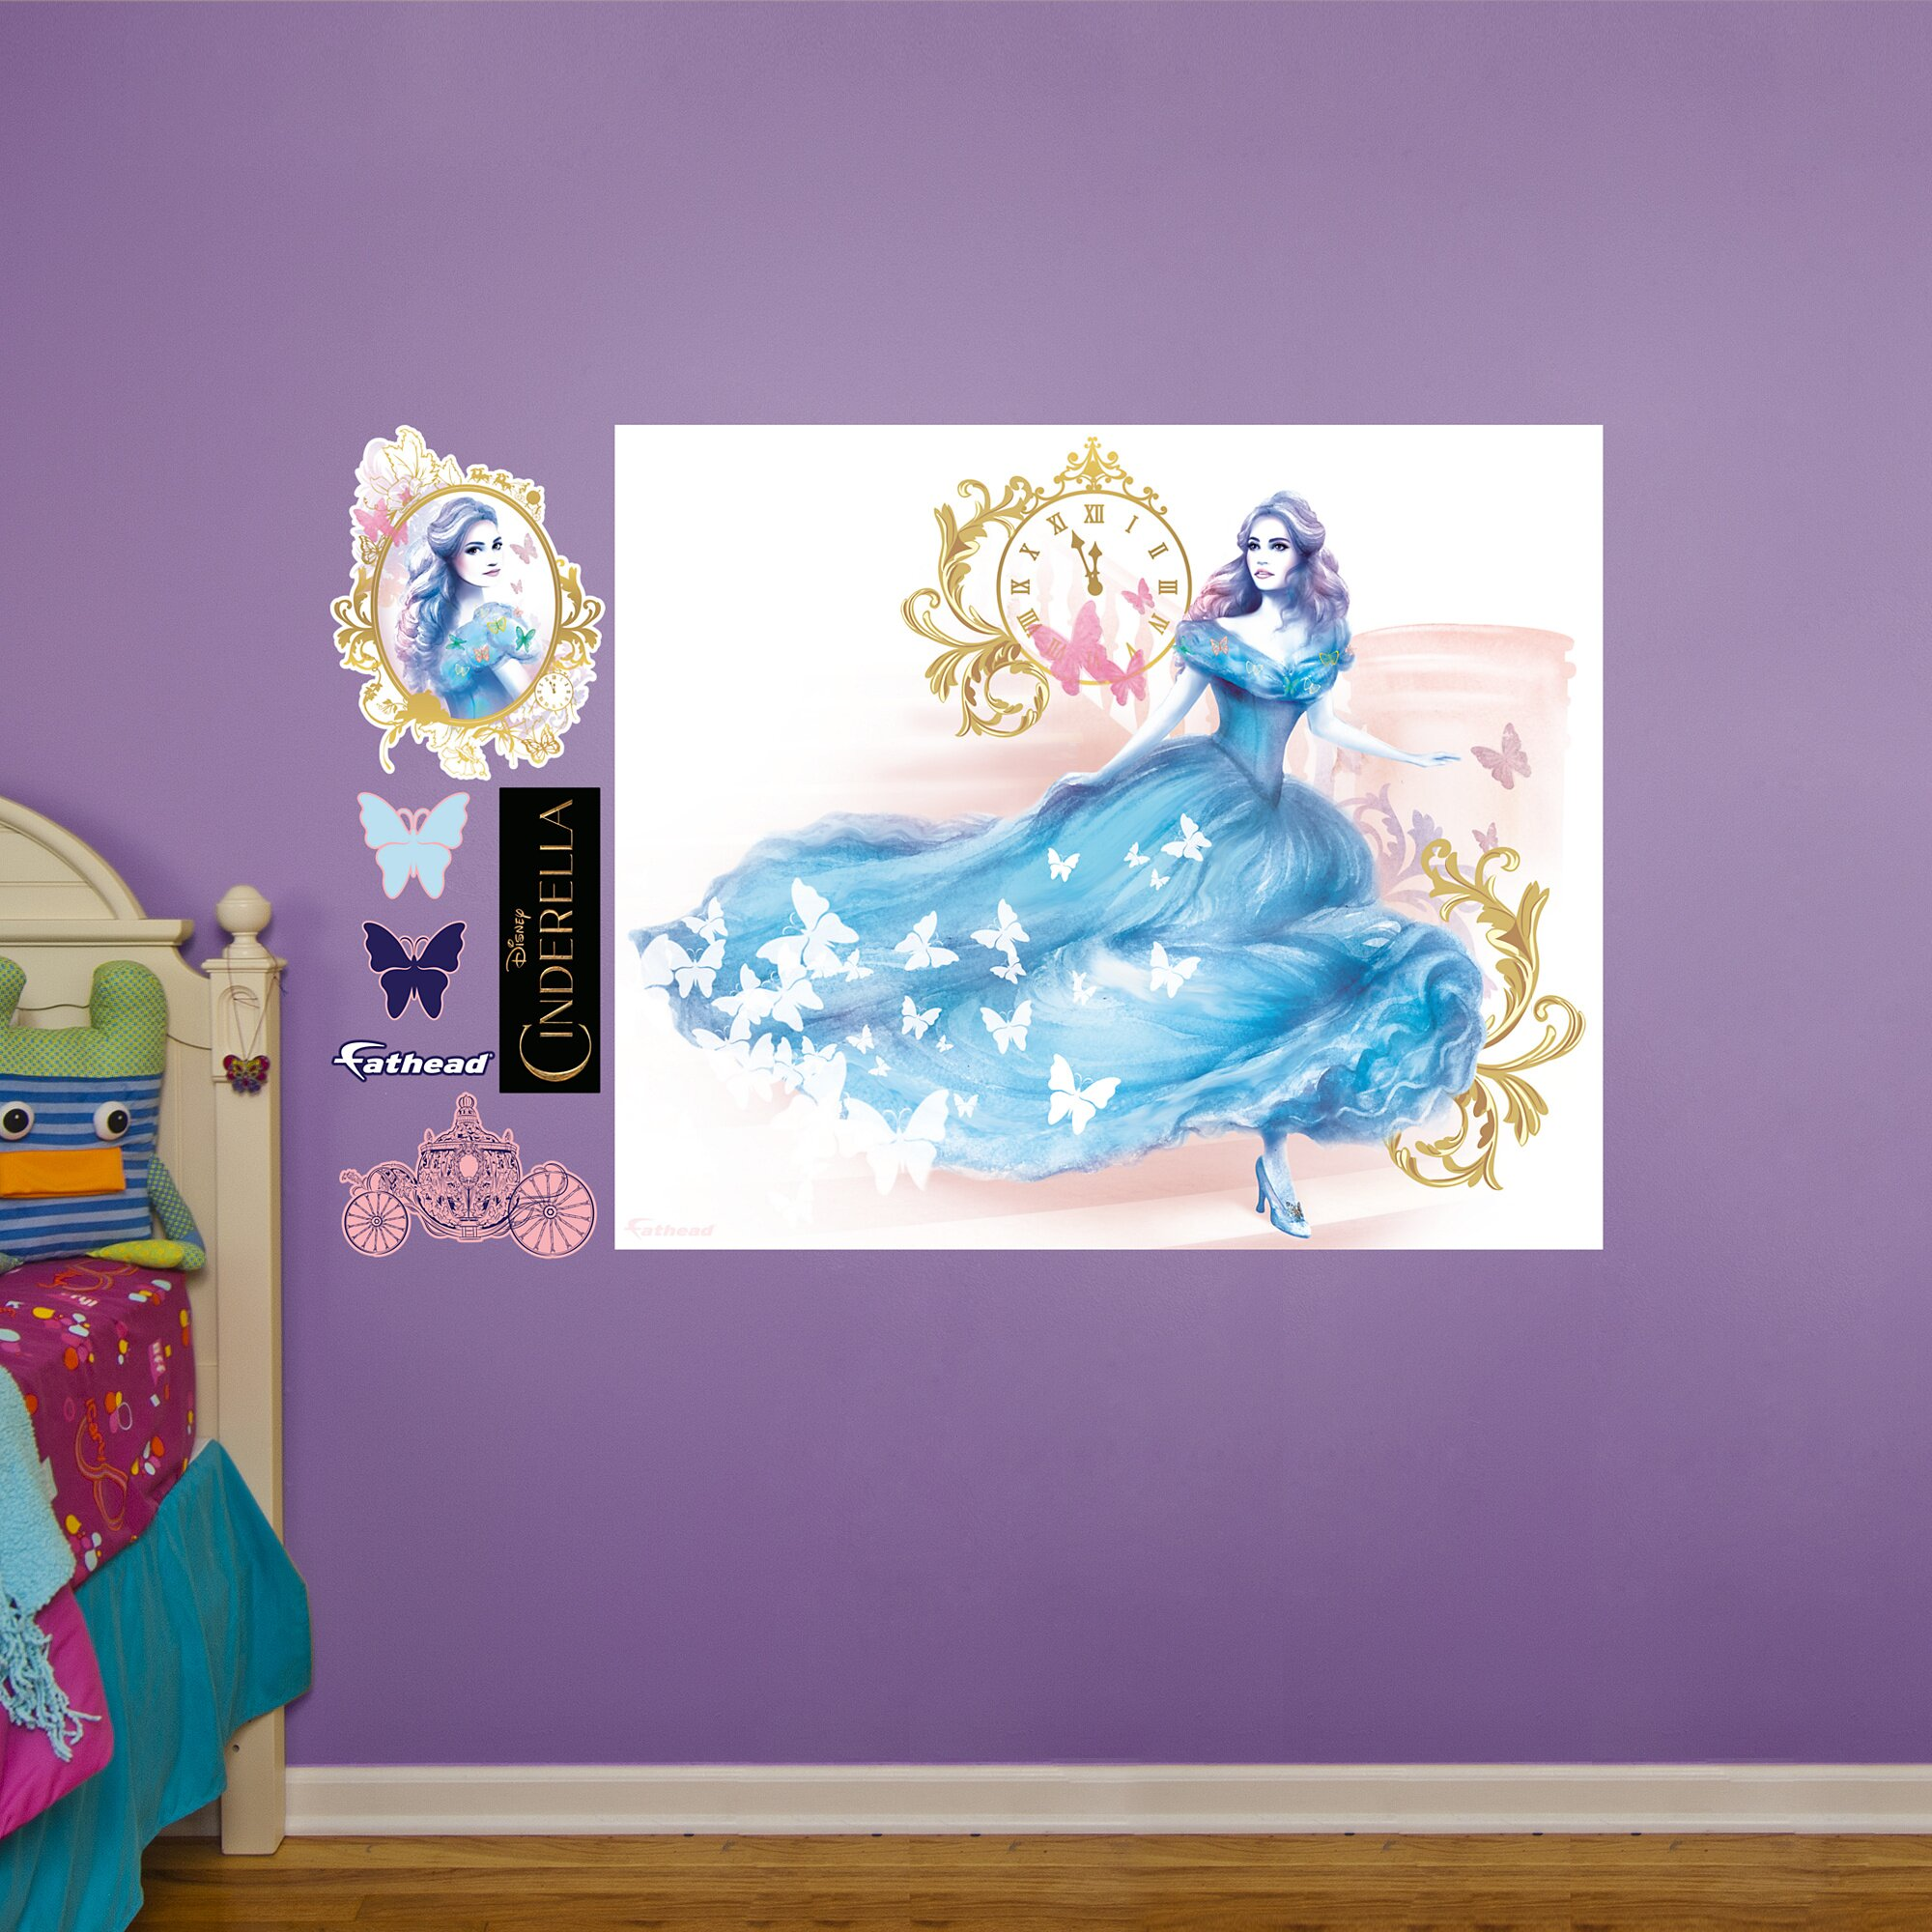 fathead disney cinderella movie peel and stick wall mural castles and rainbow wall mural cinderella princess bedding